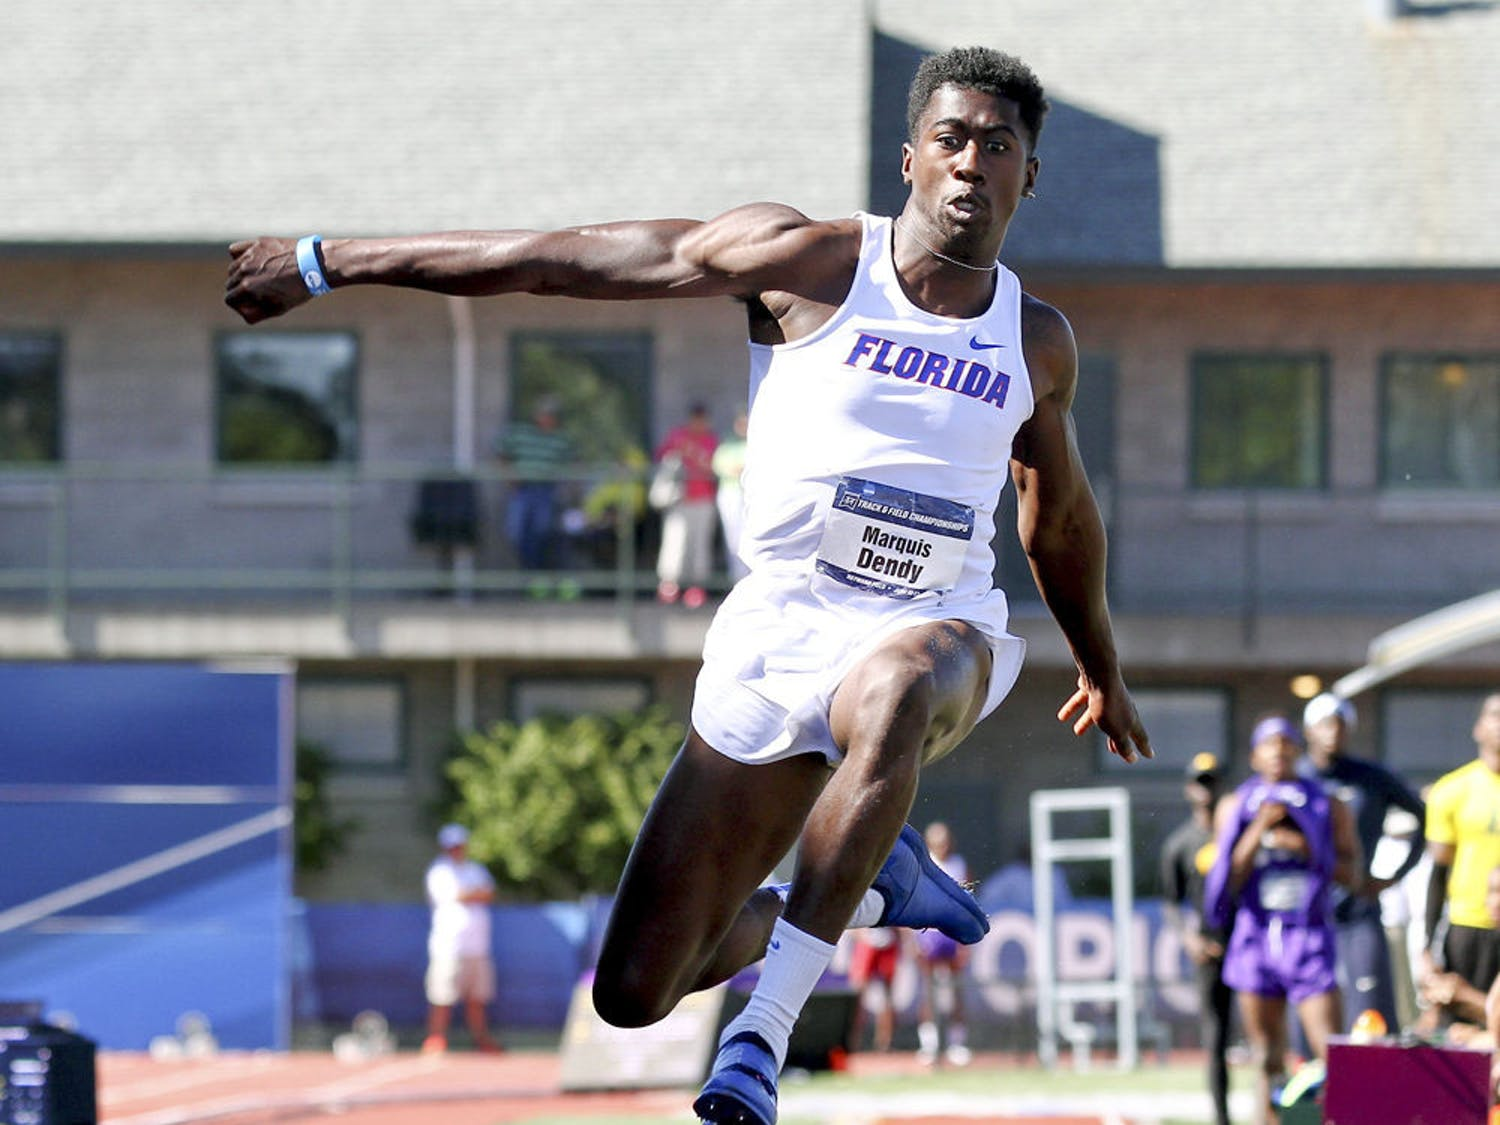 Florida's Marquis Dendy leaps on his way to winning the triple jump during the NCAA track and field championships in Eugene, Ore., Friday, June 12, 2015.